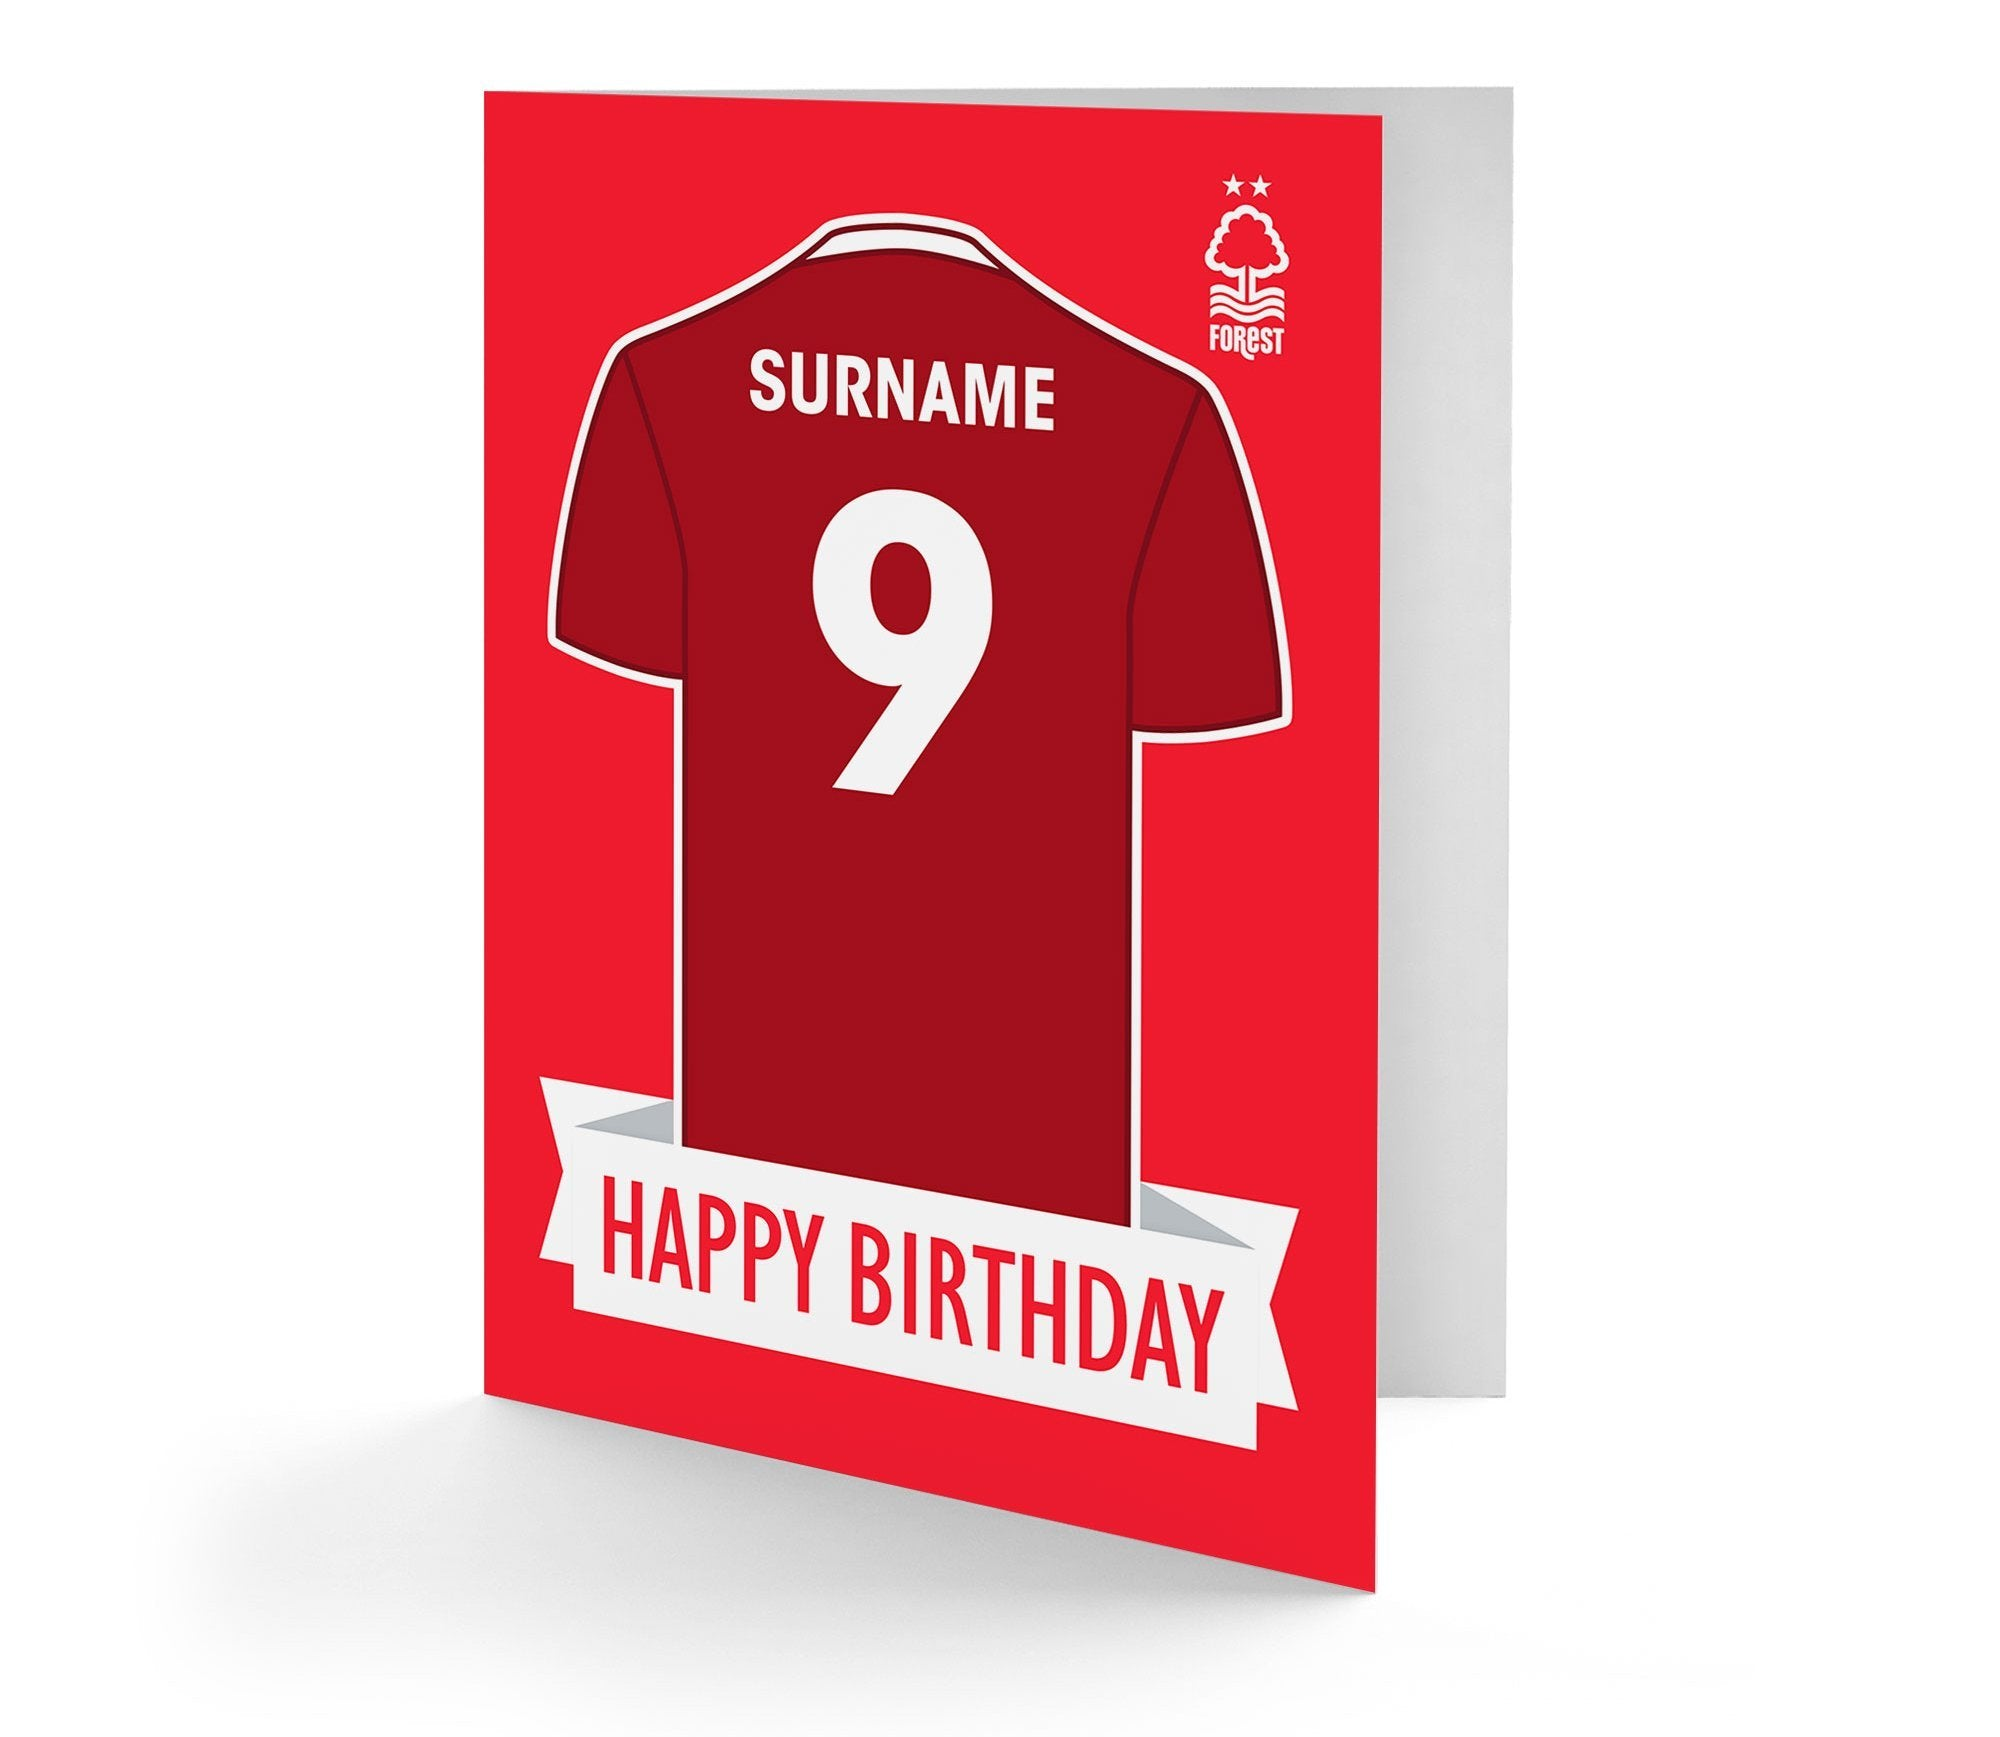 Personalised Nottingham Forest Birthday Card, Arts & Entertainment by Glamorous Gifts UK